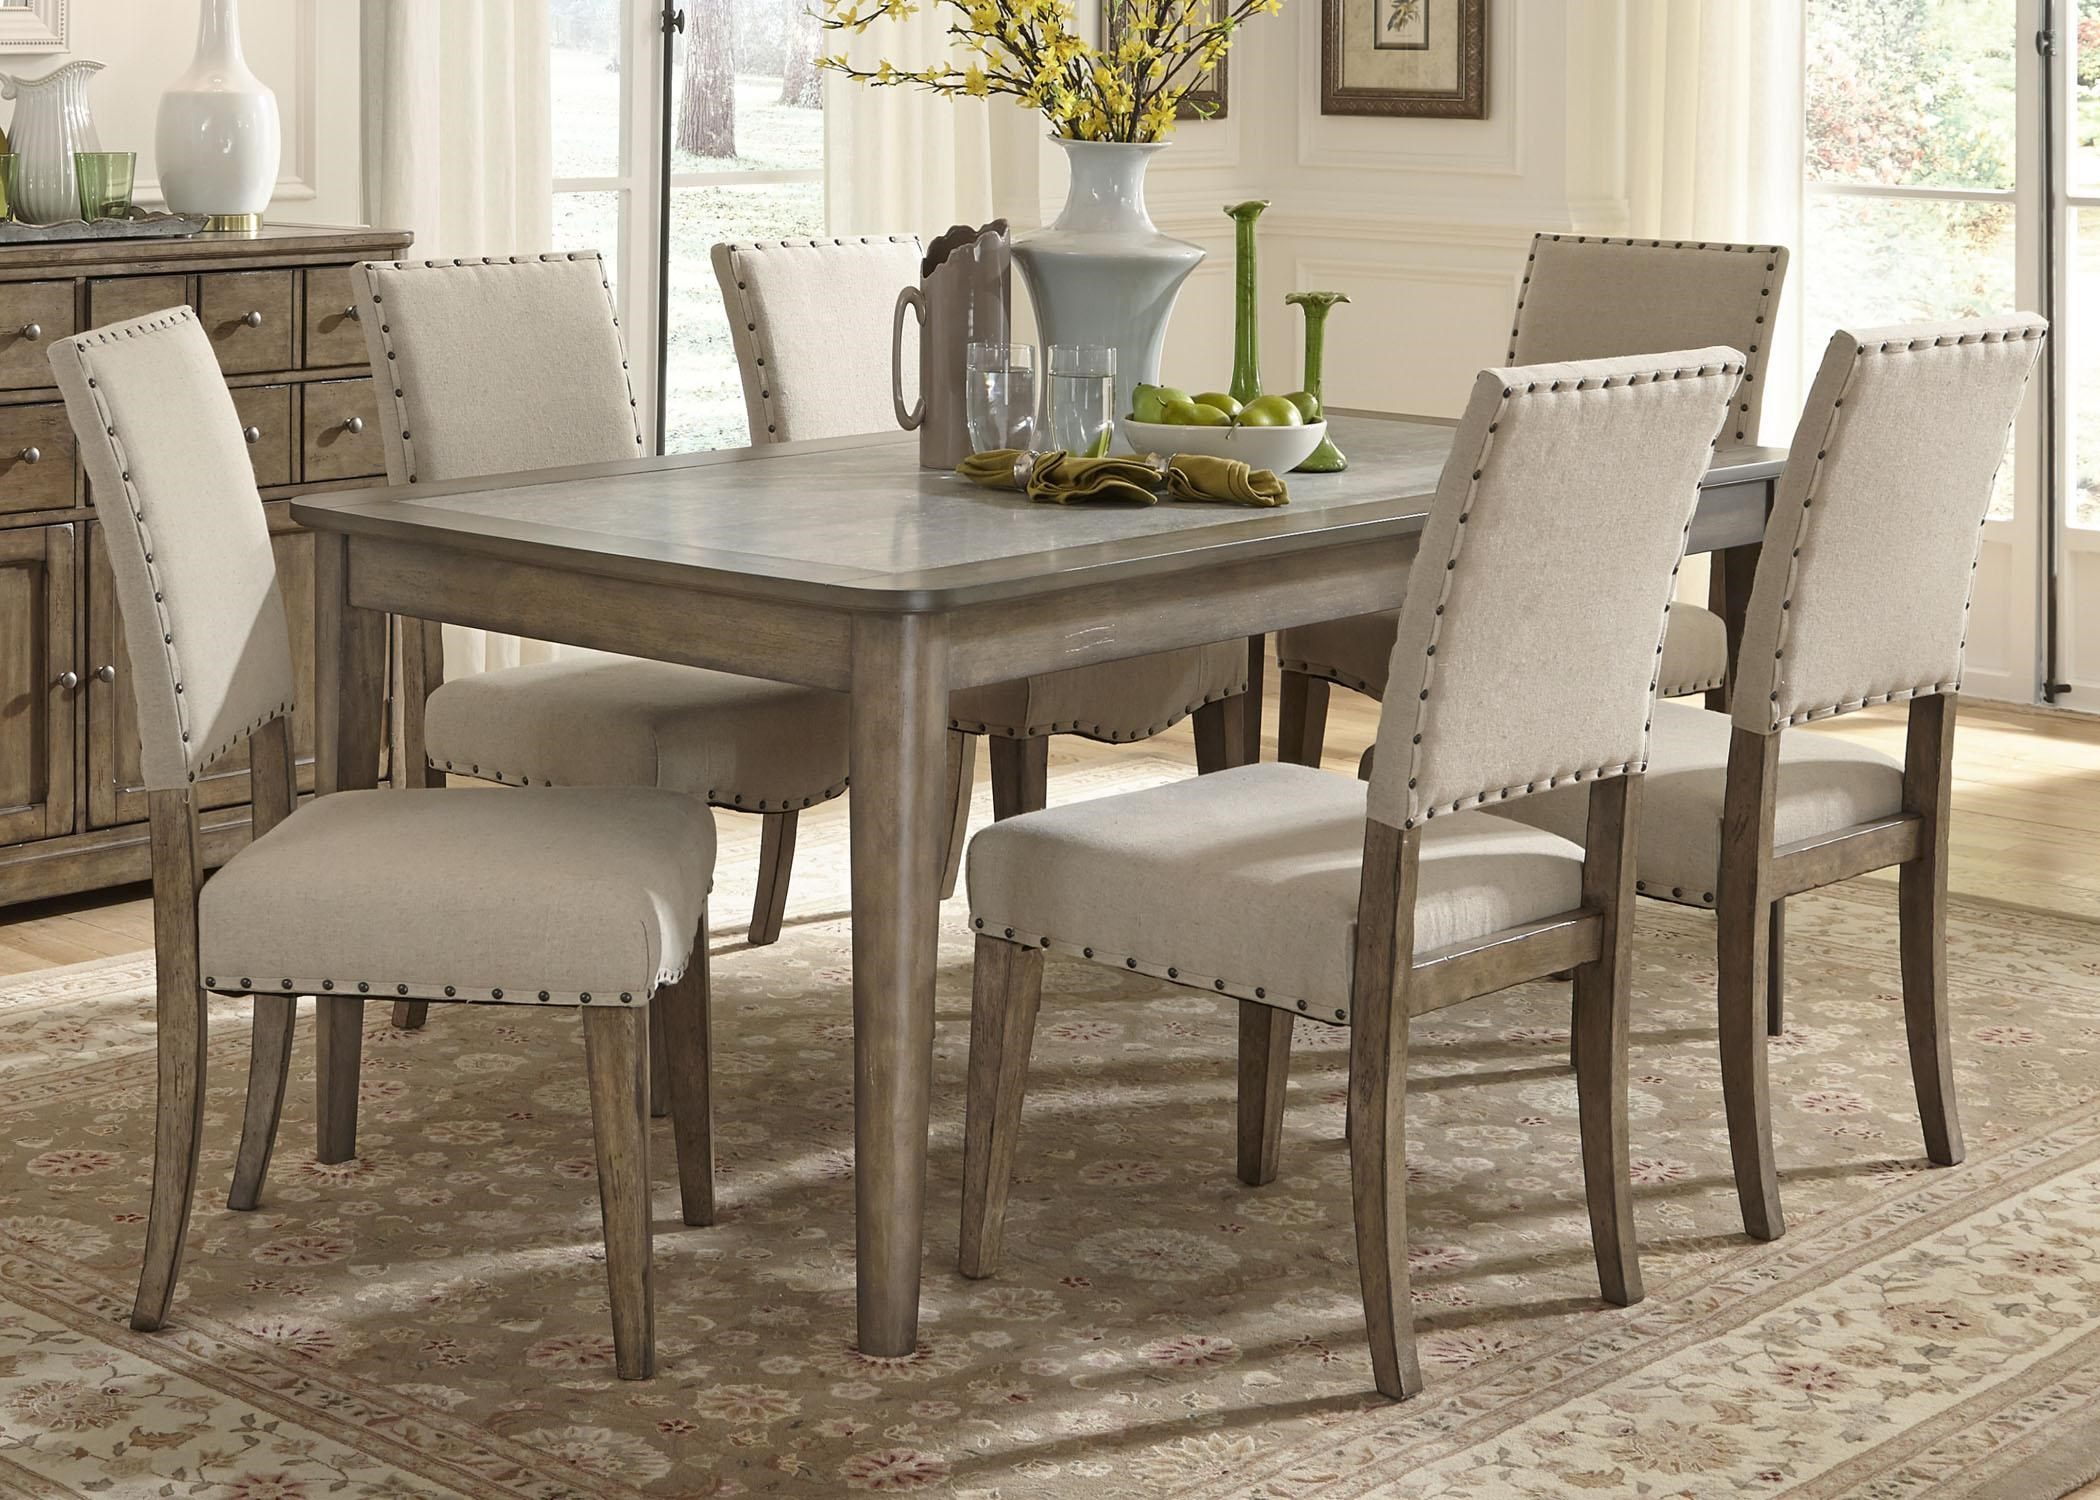 Amazing Liberty Furniture Weatherford Casual Rustic 7 Piece Dining Table And Chairs  Set Part 31